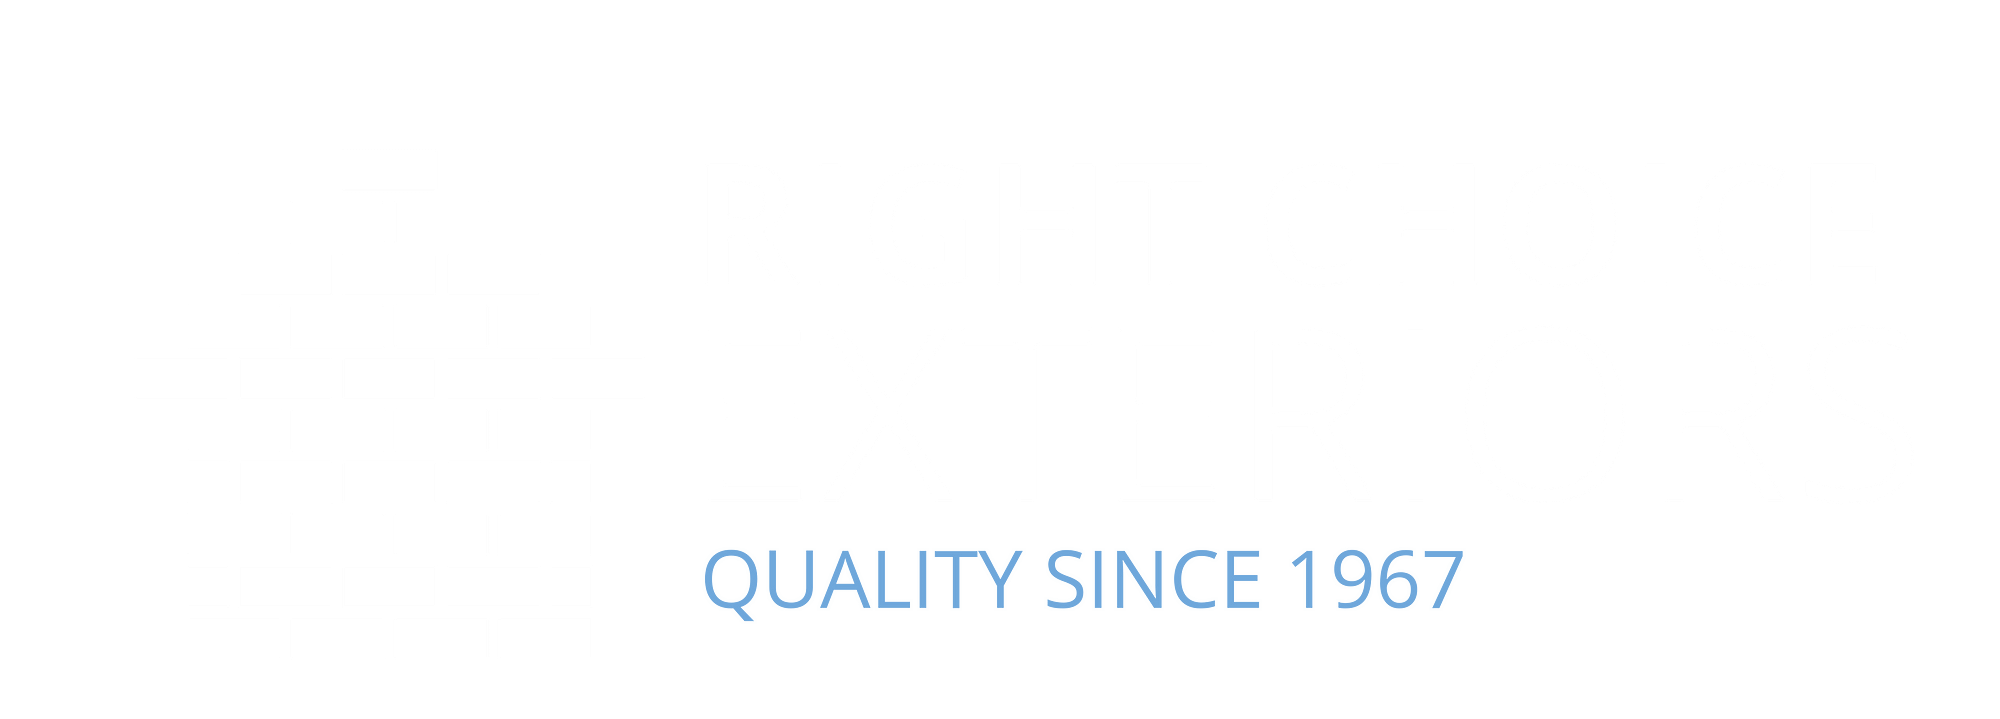 Right Choice Exteriors